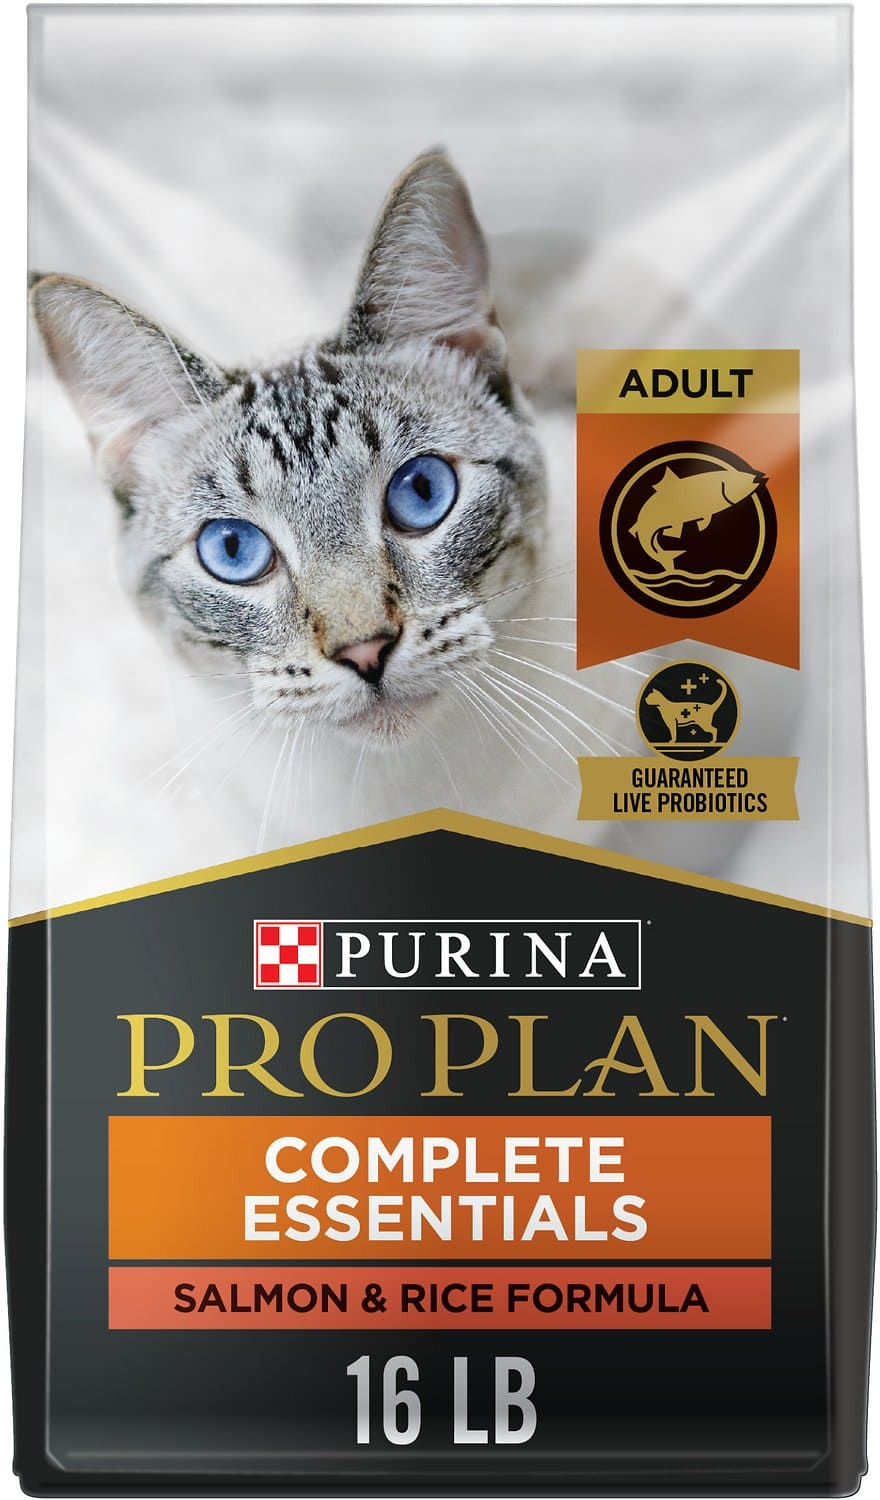 Purina Pro Plan Adult Complete Essentials  16 lbs Salmon & Rice 1